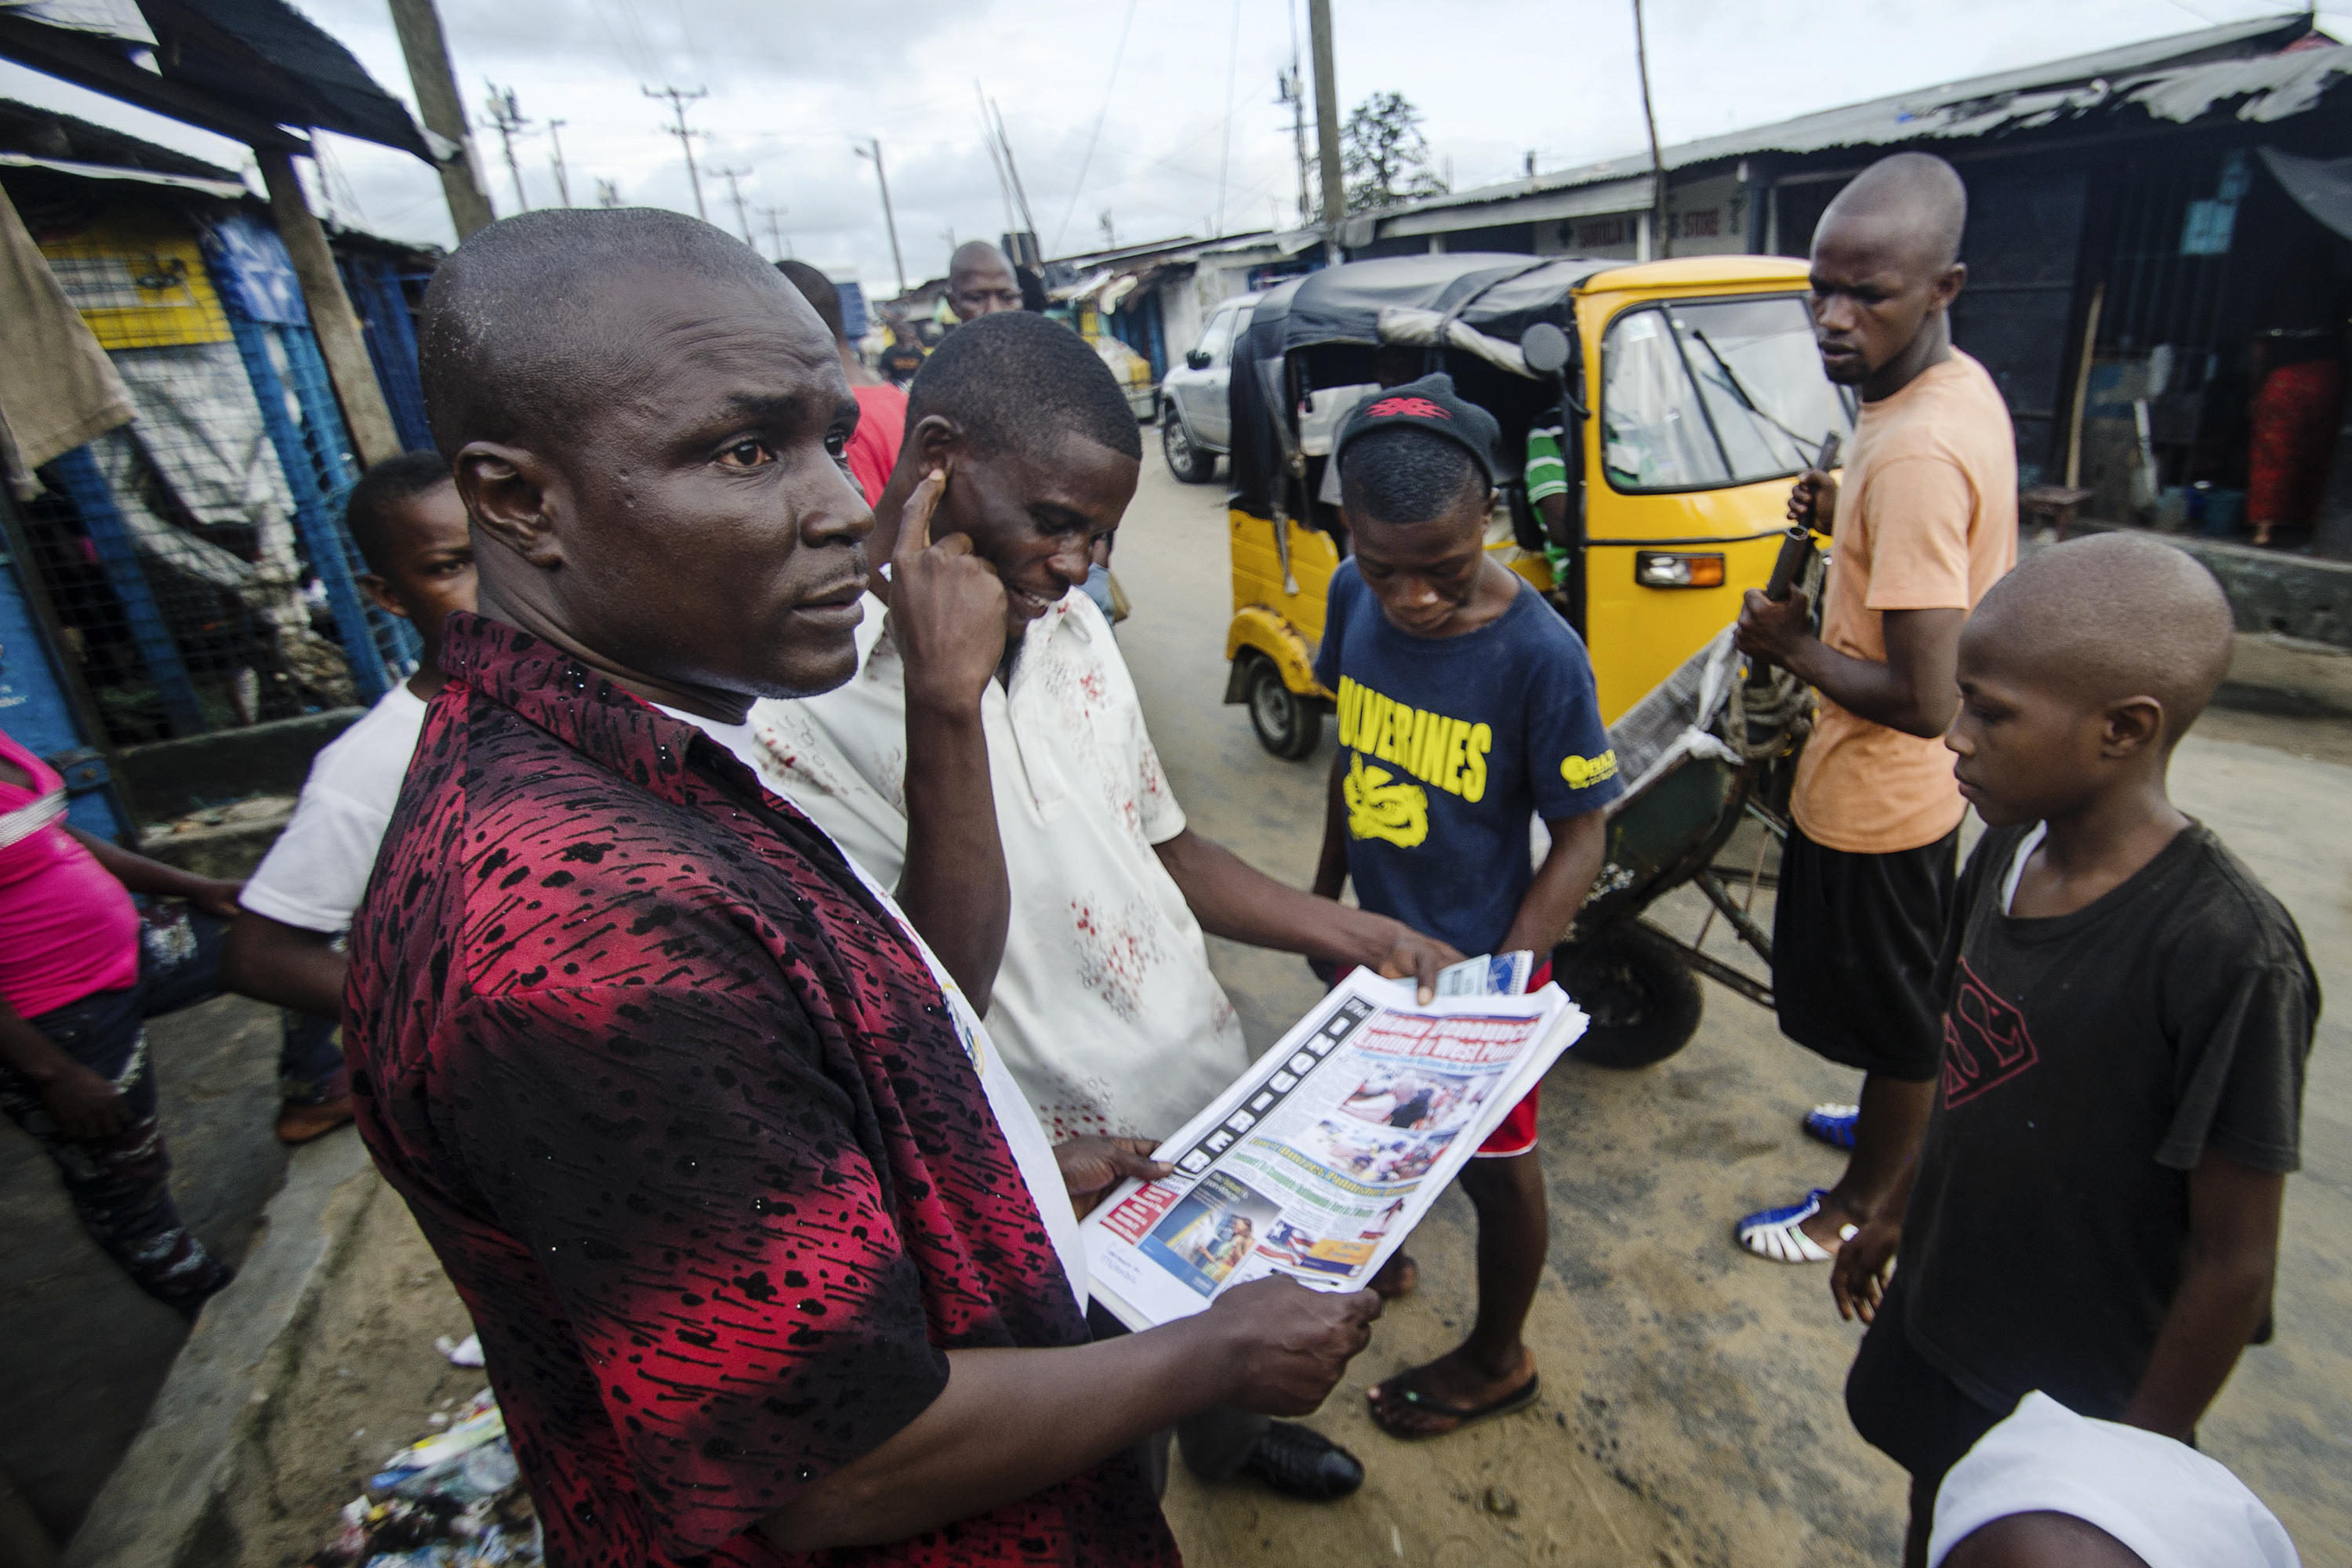 Residents gather on the main road to read newspaper headlines about Ebola.